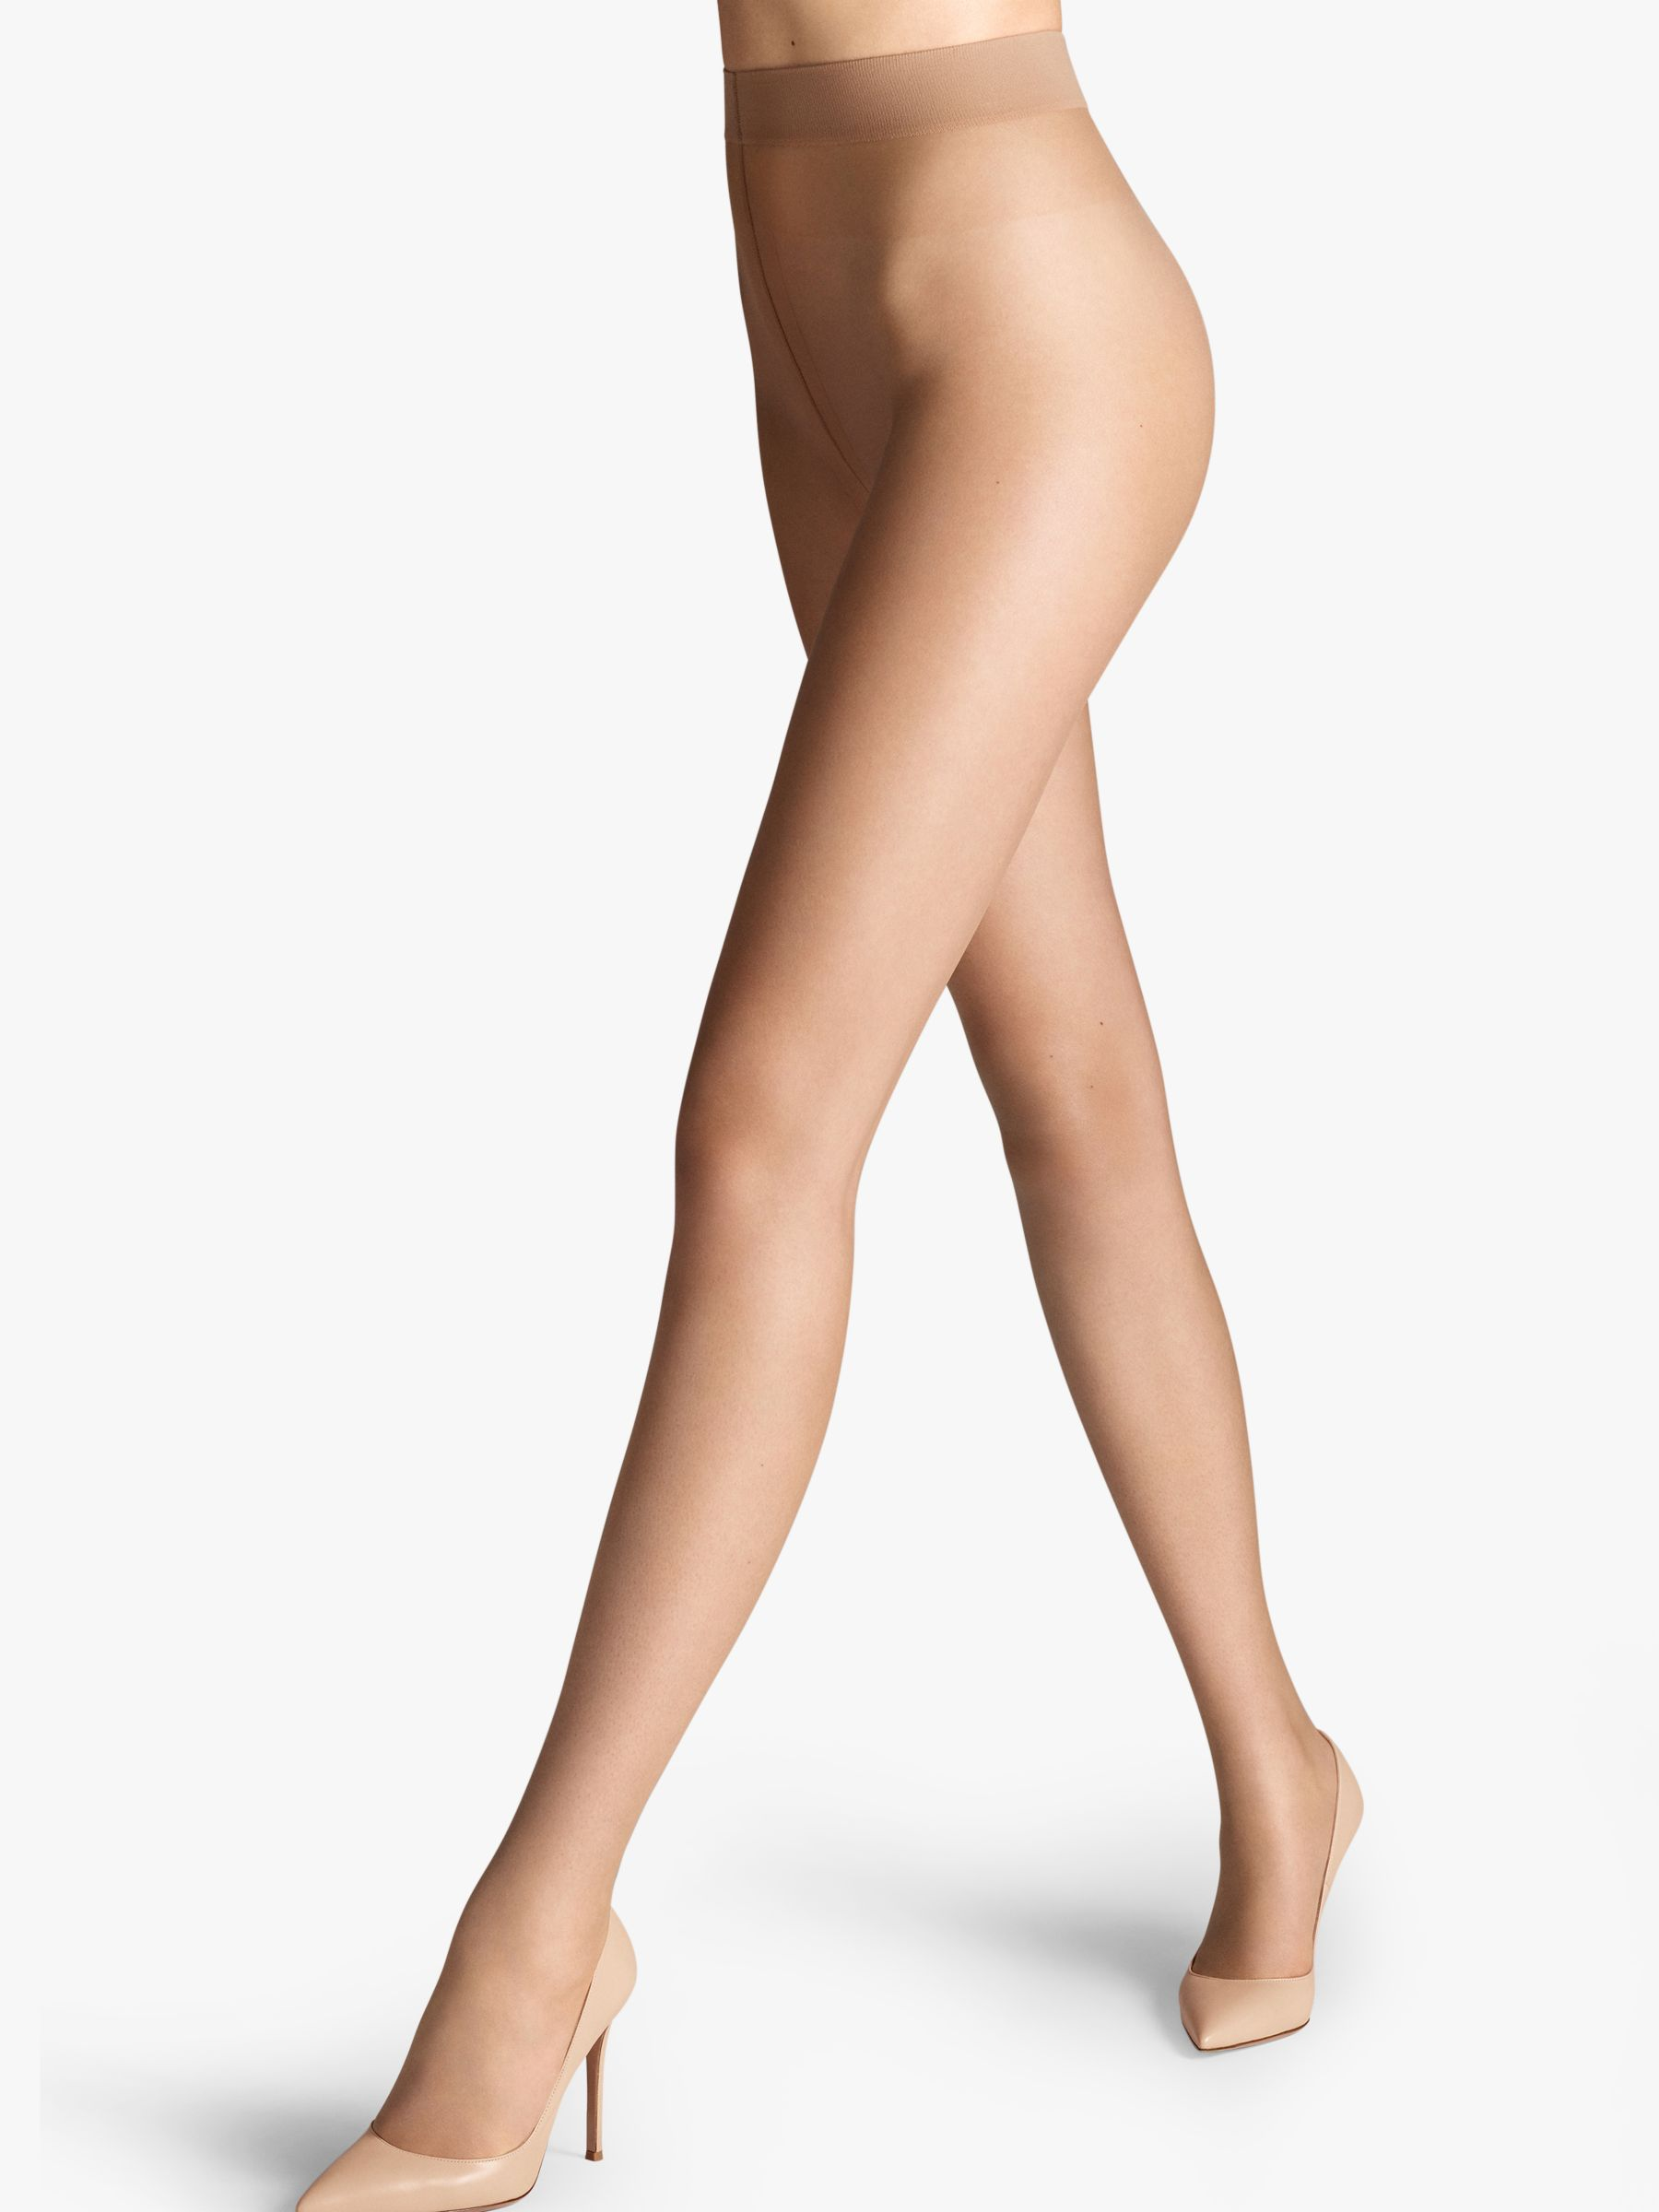 Wolford Wolford Nude 8 3 Denier Tights, Pack of 2, Fairly Light